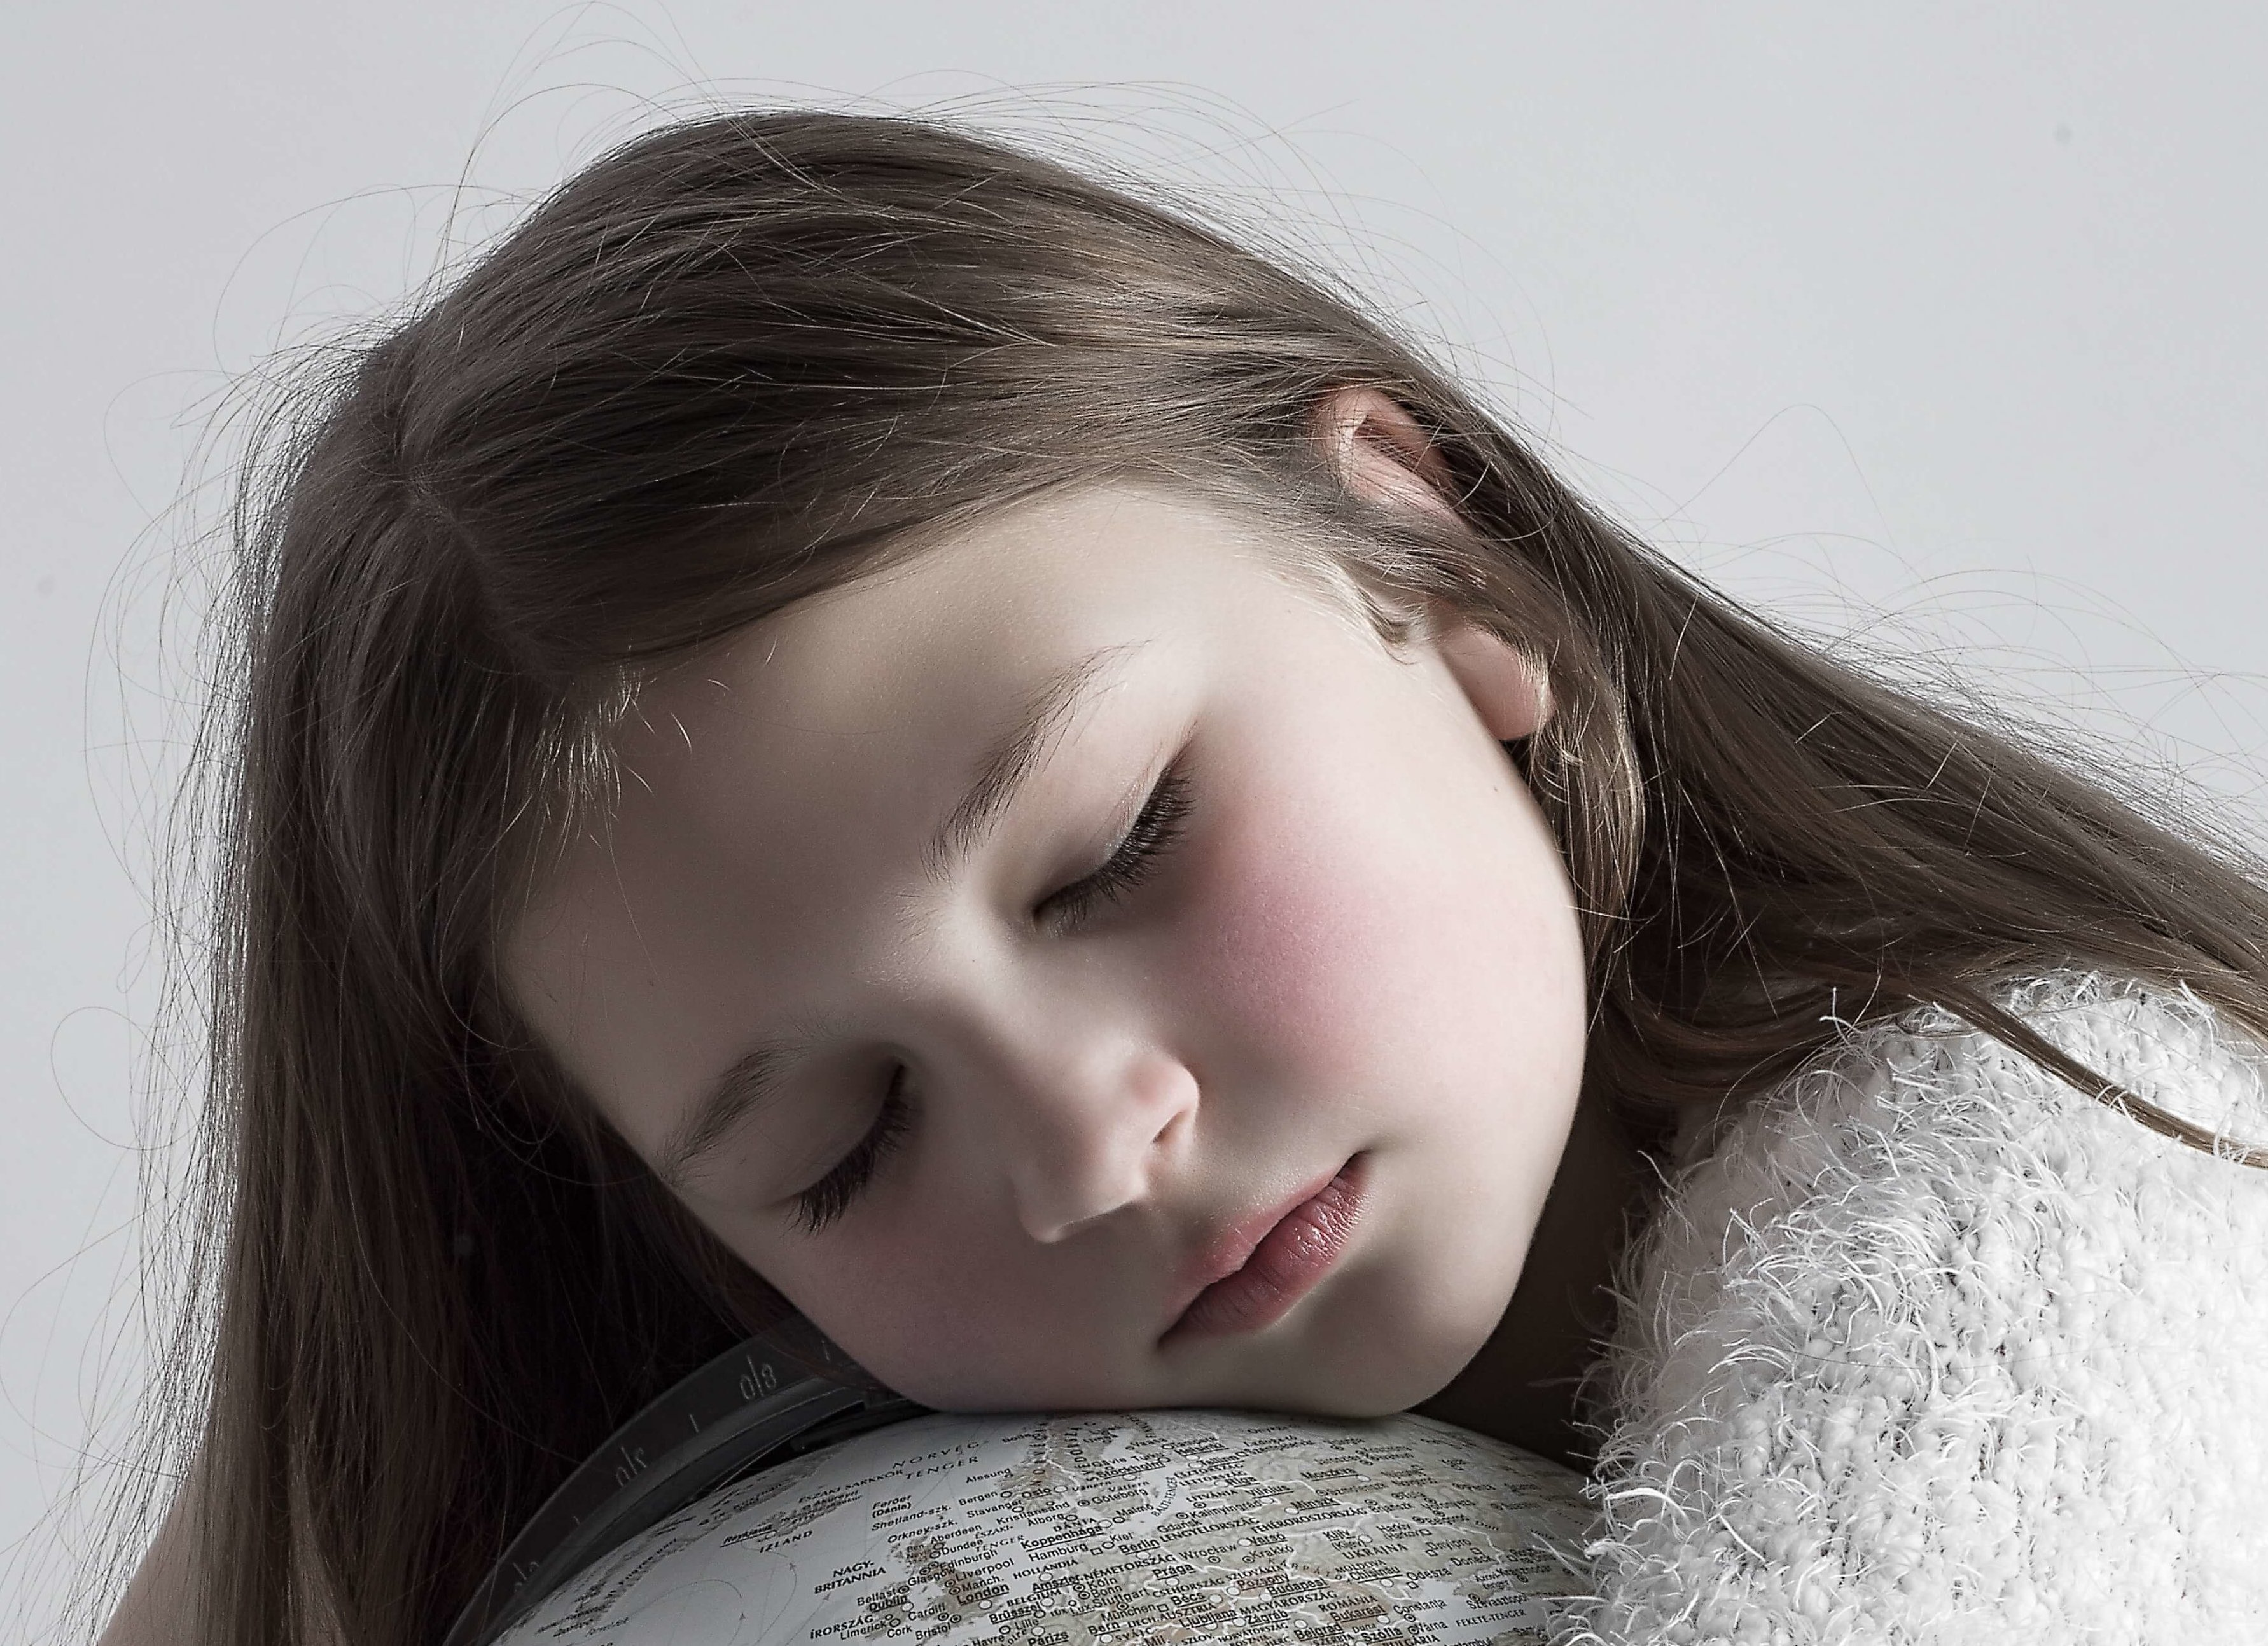 Children, anxiety, sleep